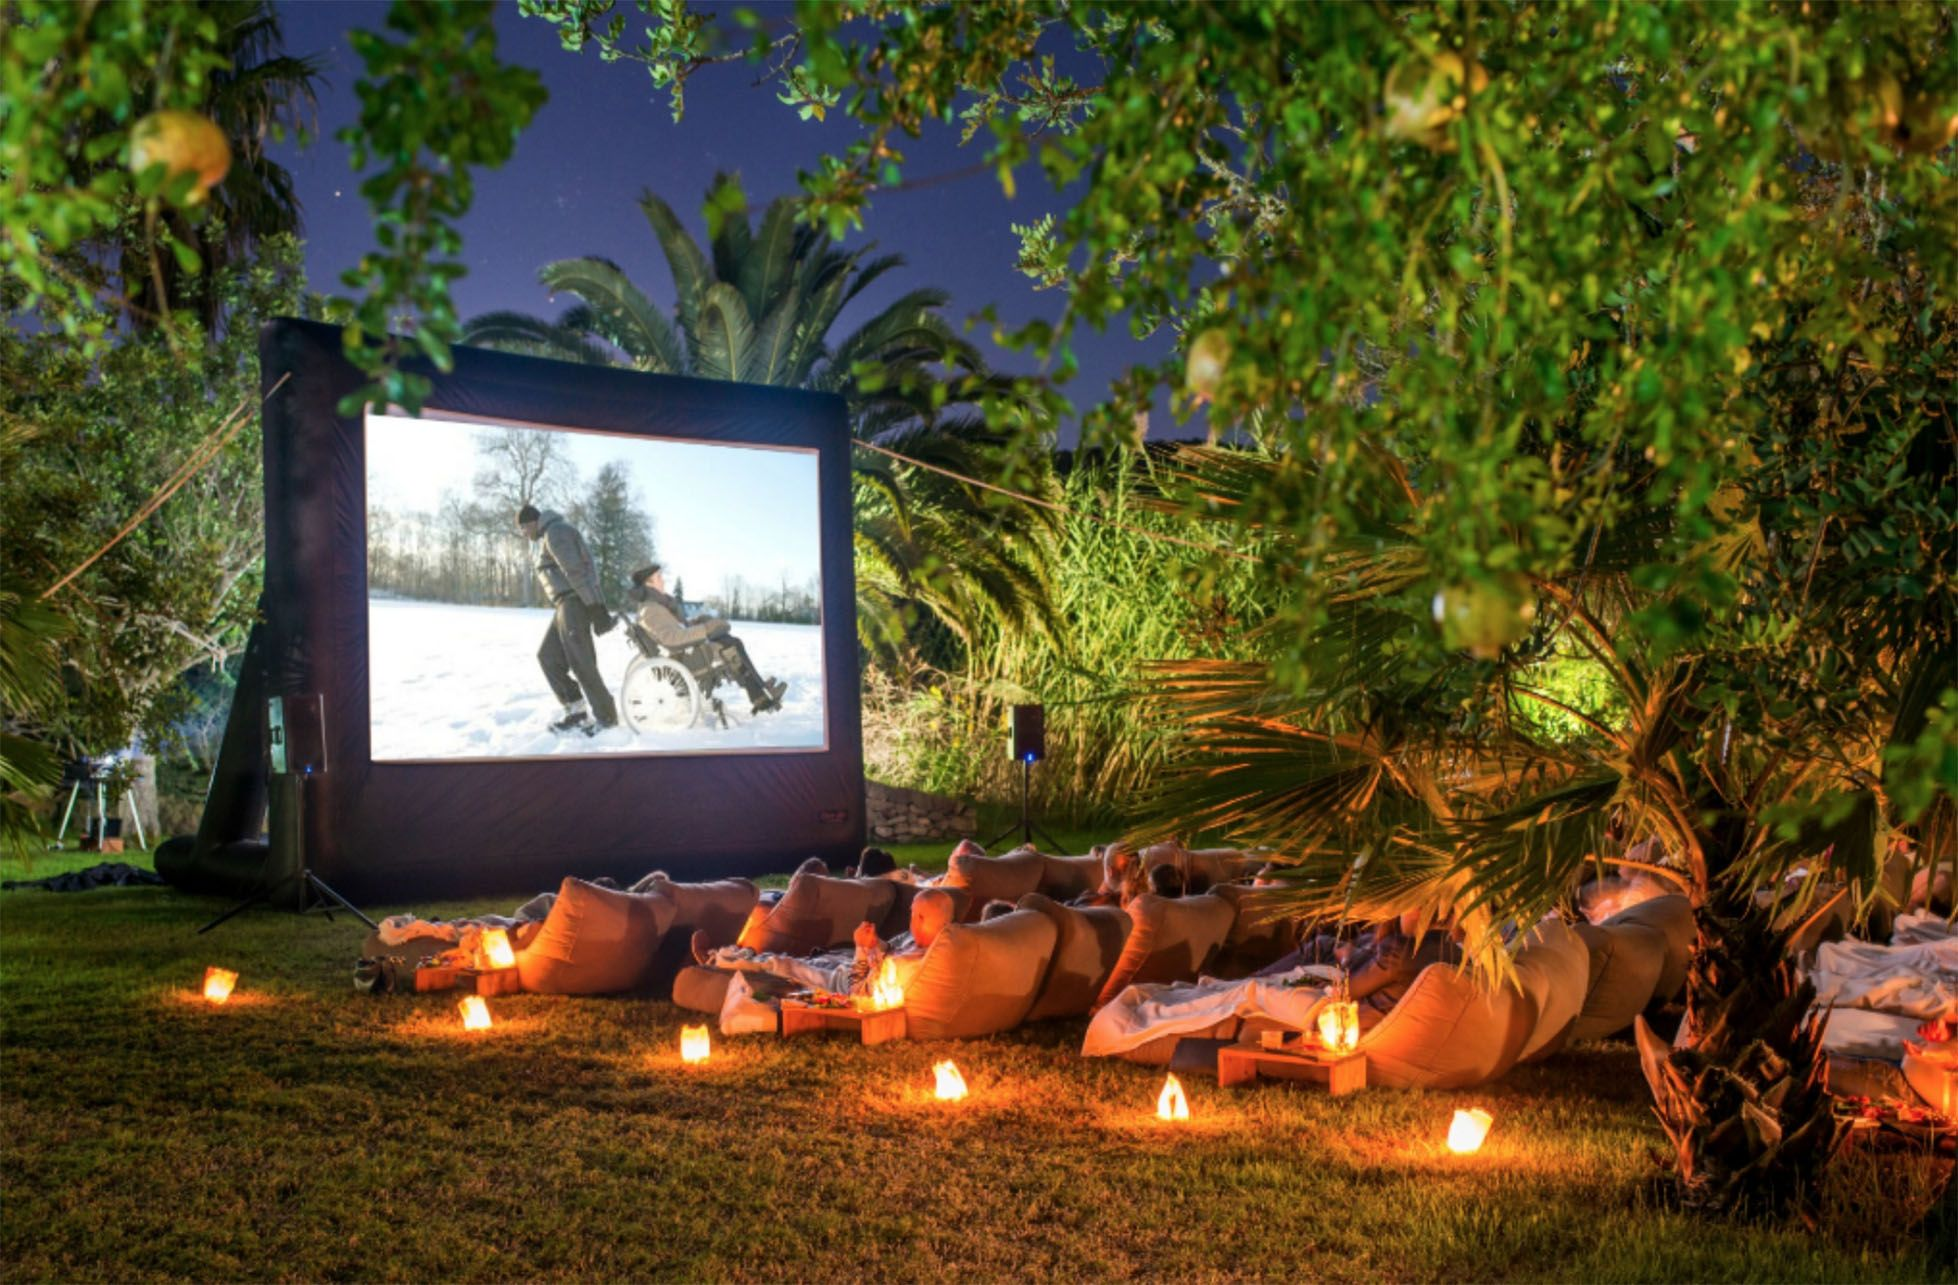 popup cinema